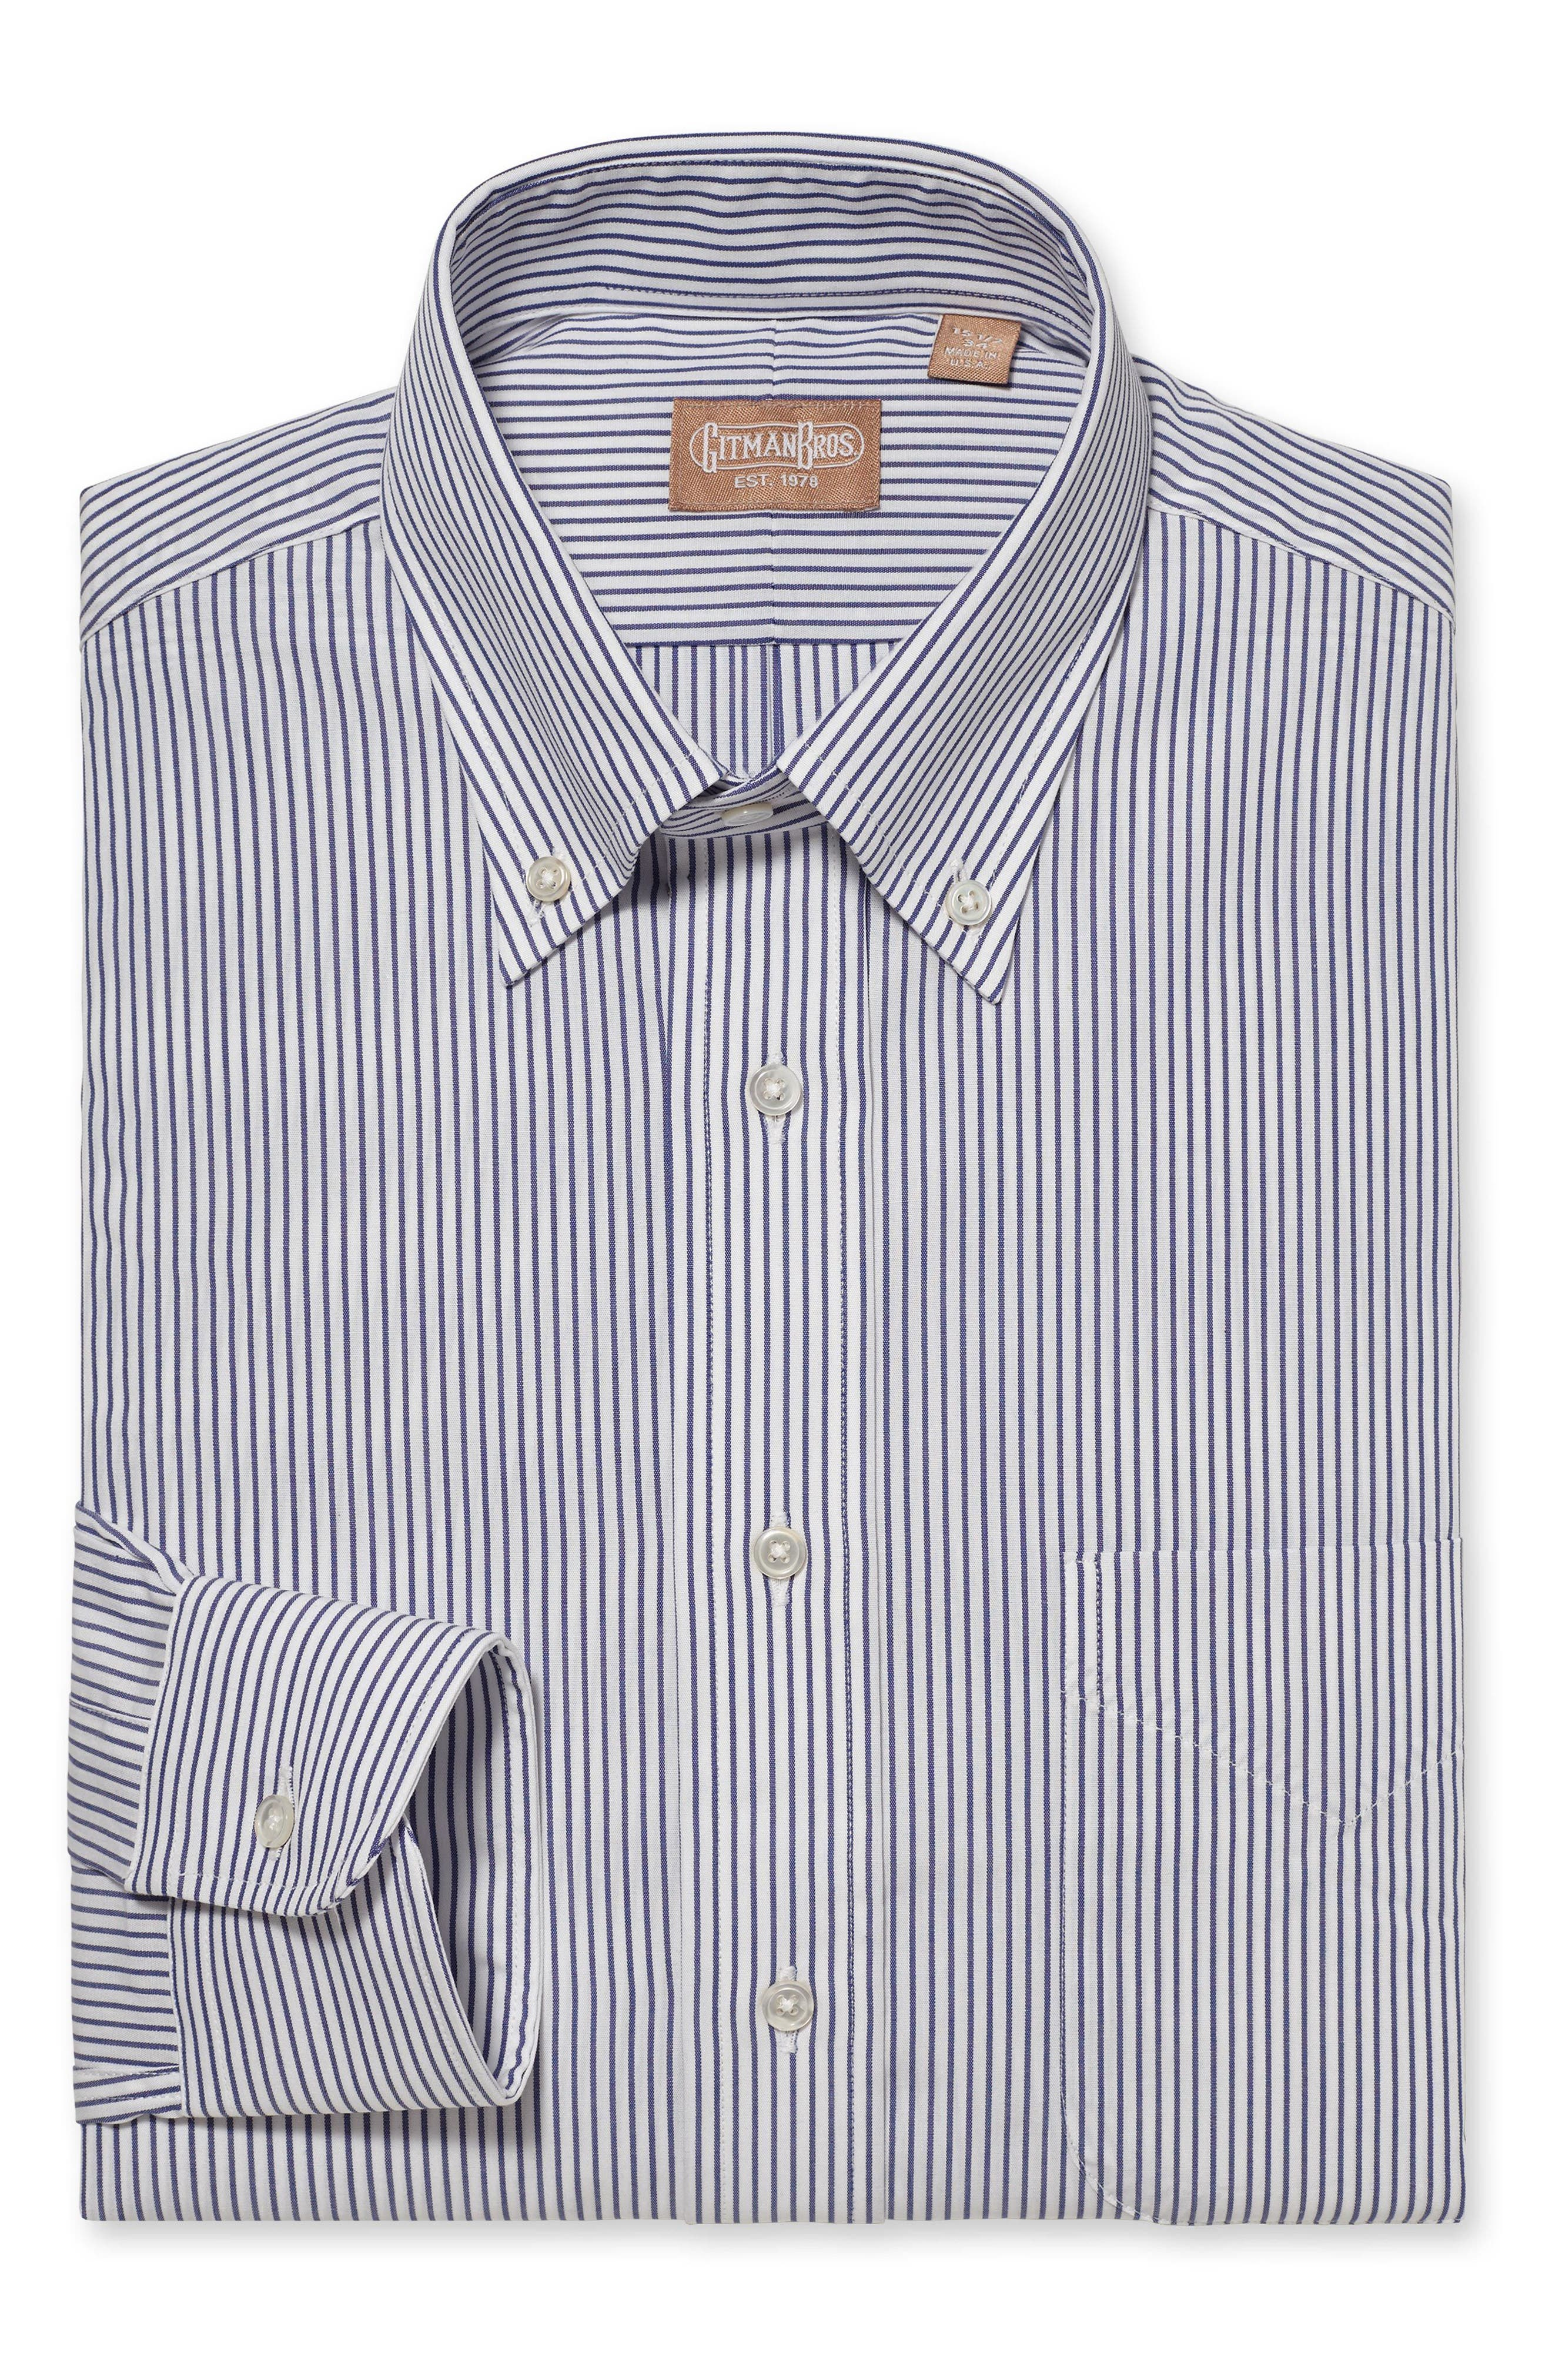 Regular Fit Stripe Dress Shirt,                         Main,                         color, Navy